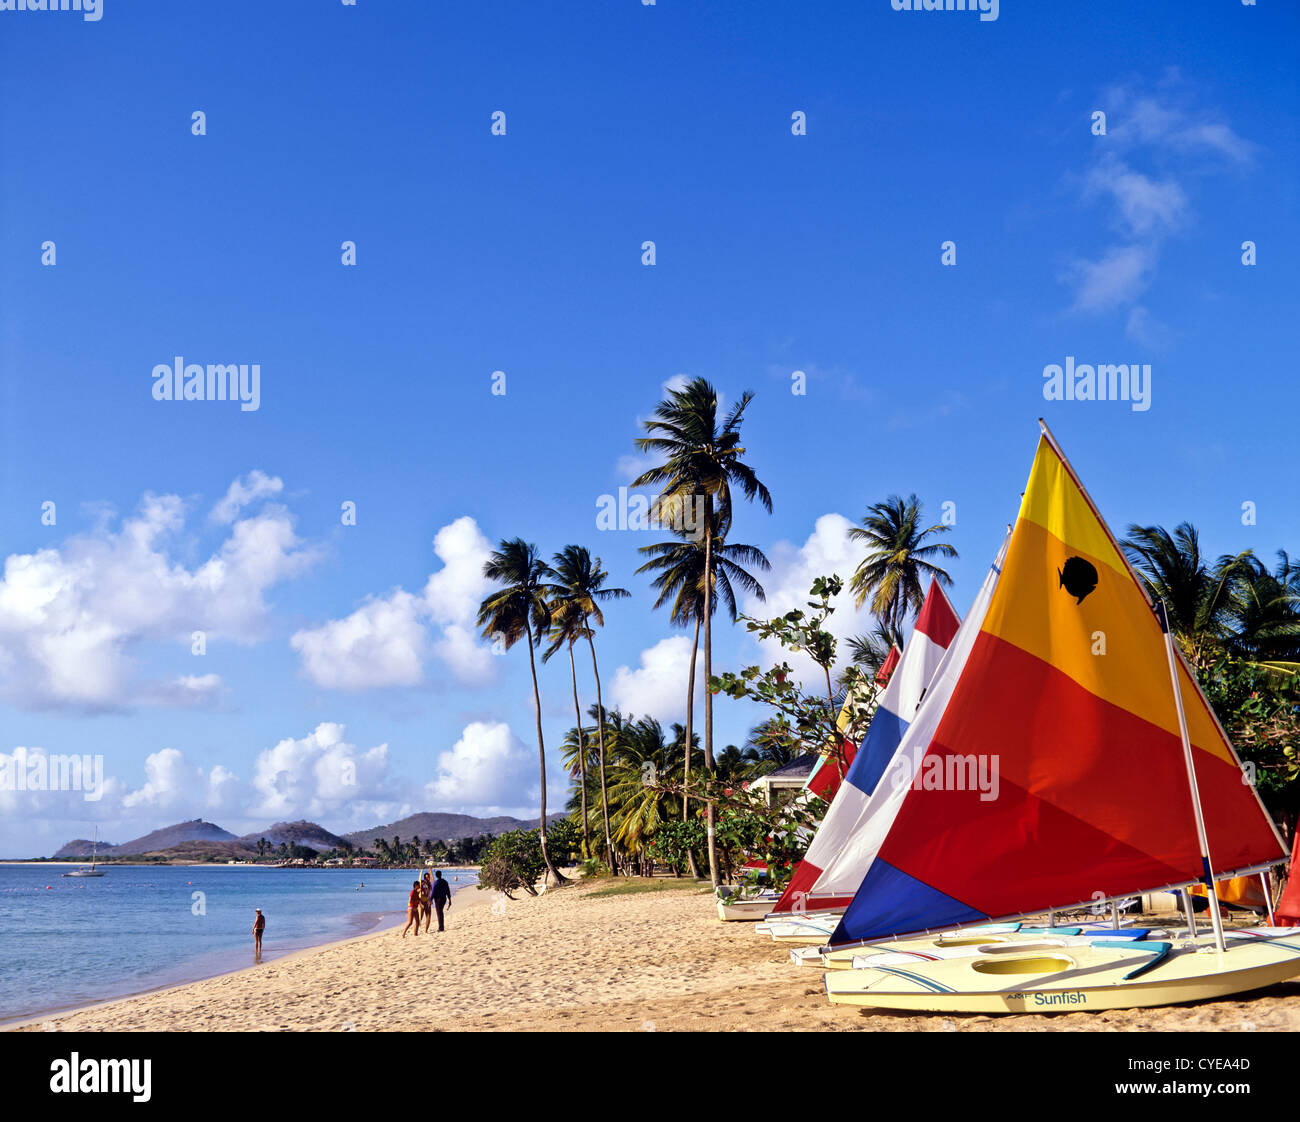 8381. Rodney Bay, St Lucia, Caribbean, West Indies - Stock Image